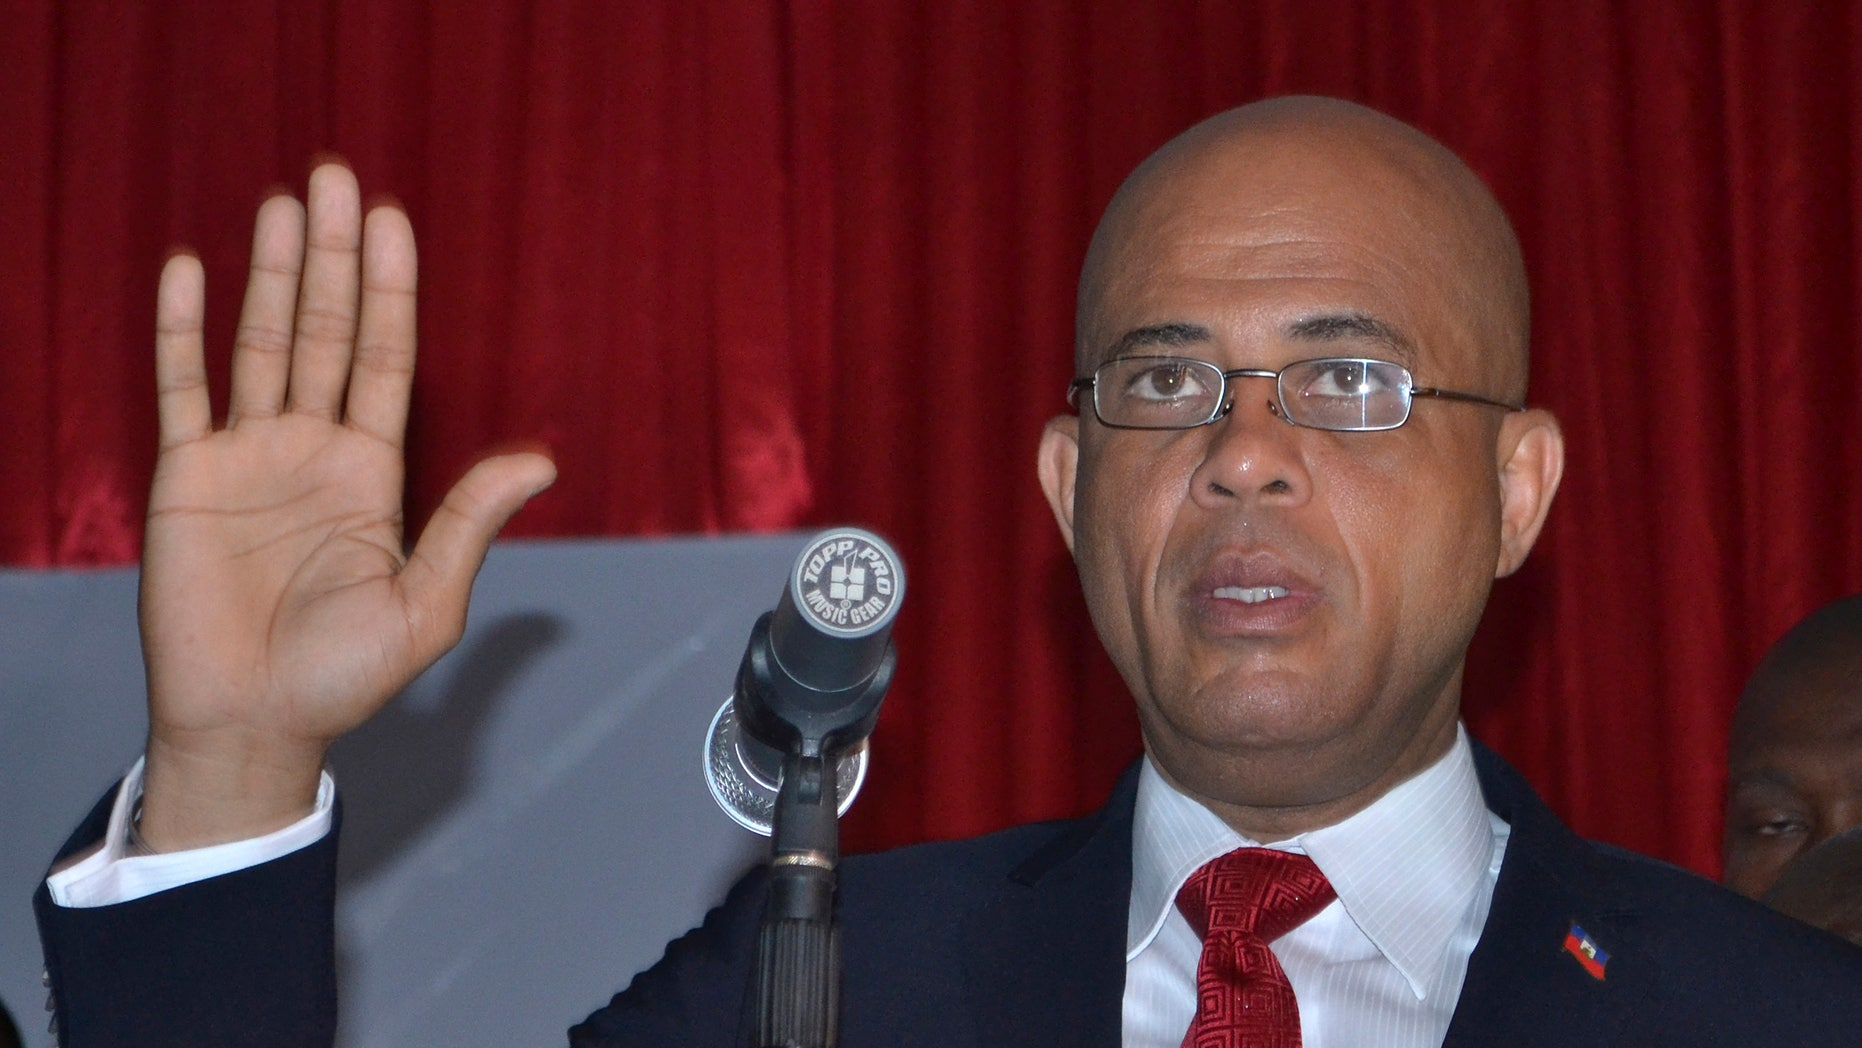 """Michel Martelly is sworn in as Haiti's new president inside a Haitian Parliamentary meeting room in Port-au-Prince, Haiti, Saturday May 14, 2011. Martelly, better known as the popular singer """"Sweet Mickey, defeated his closest rival former, first lady Mirlande Manigat, in a landslide victory with 67.5 percent of the vote in the runoff elections held on March 20th."""